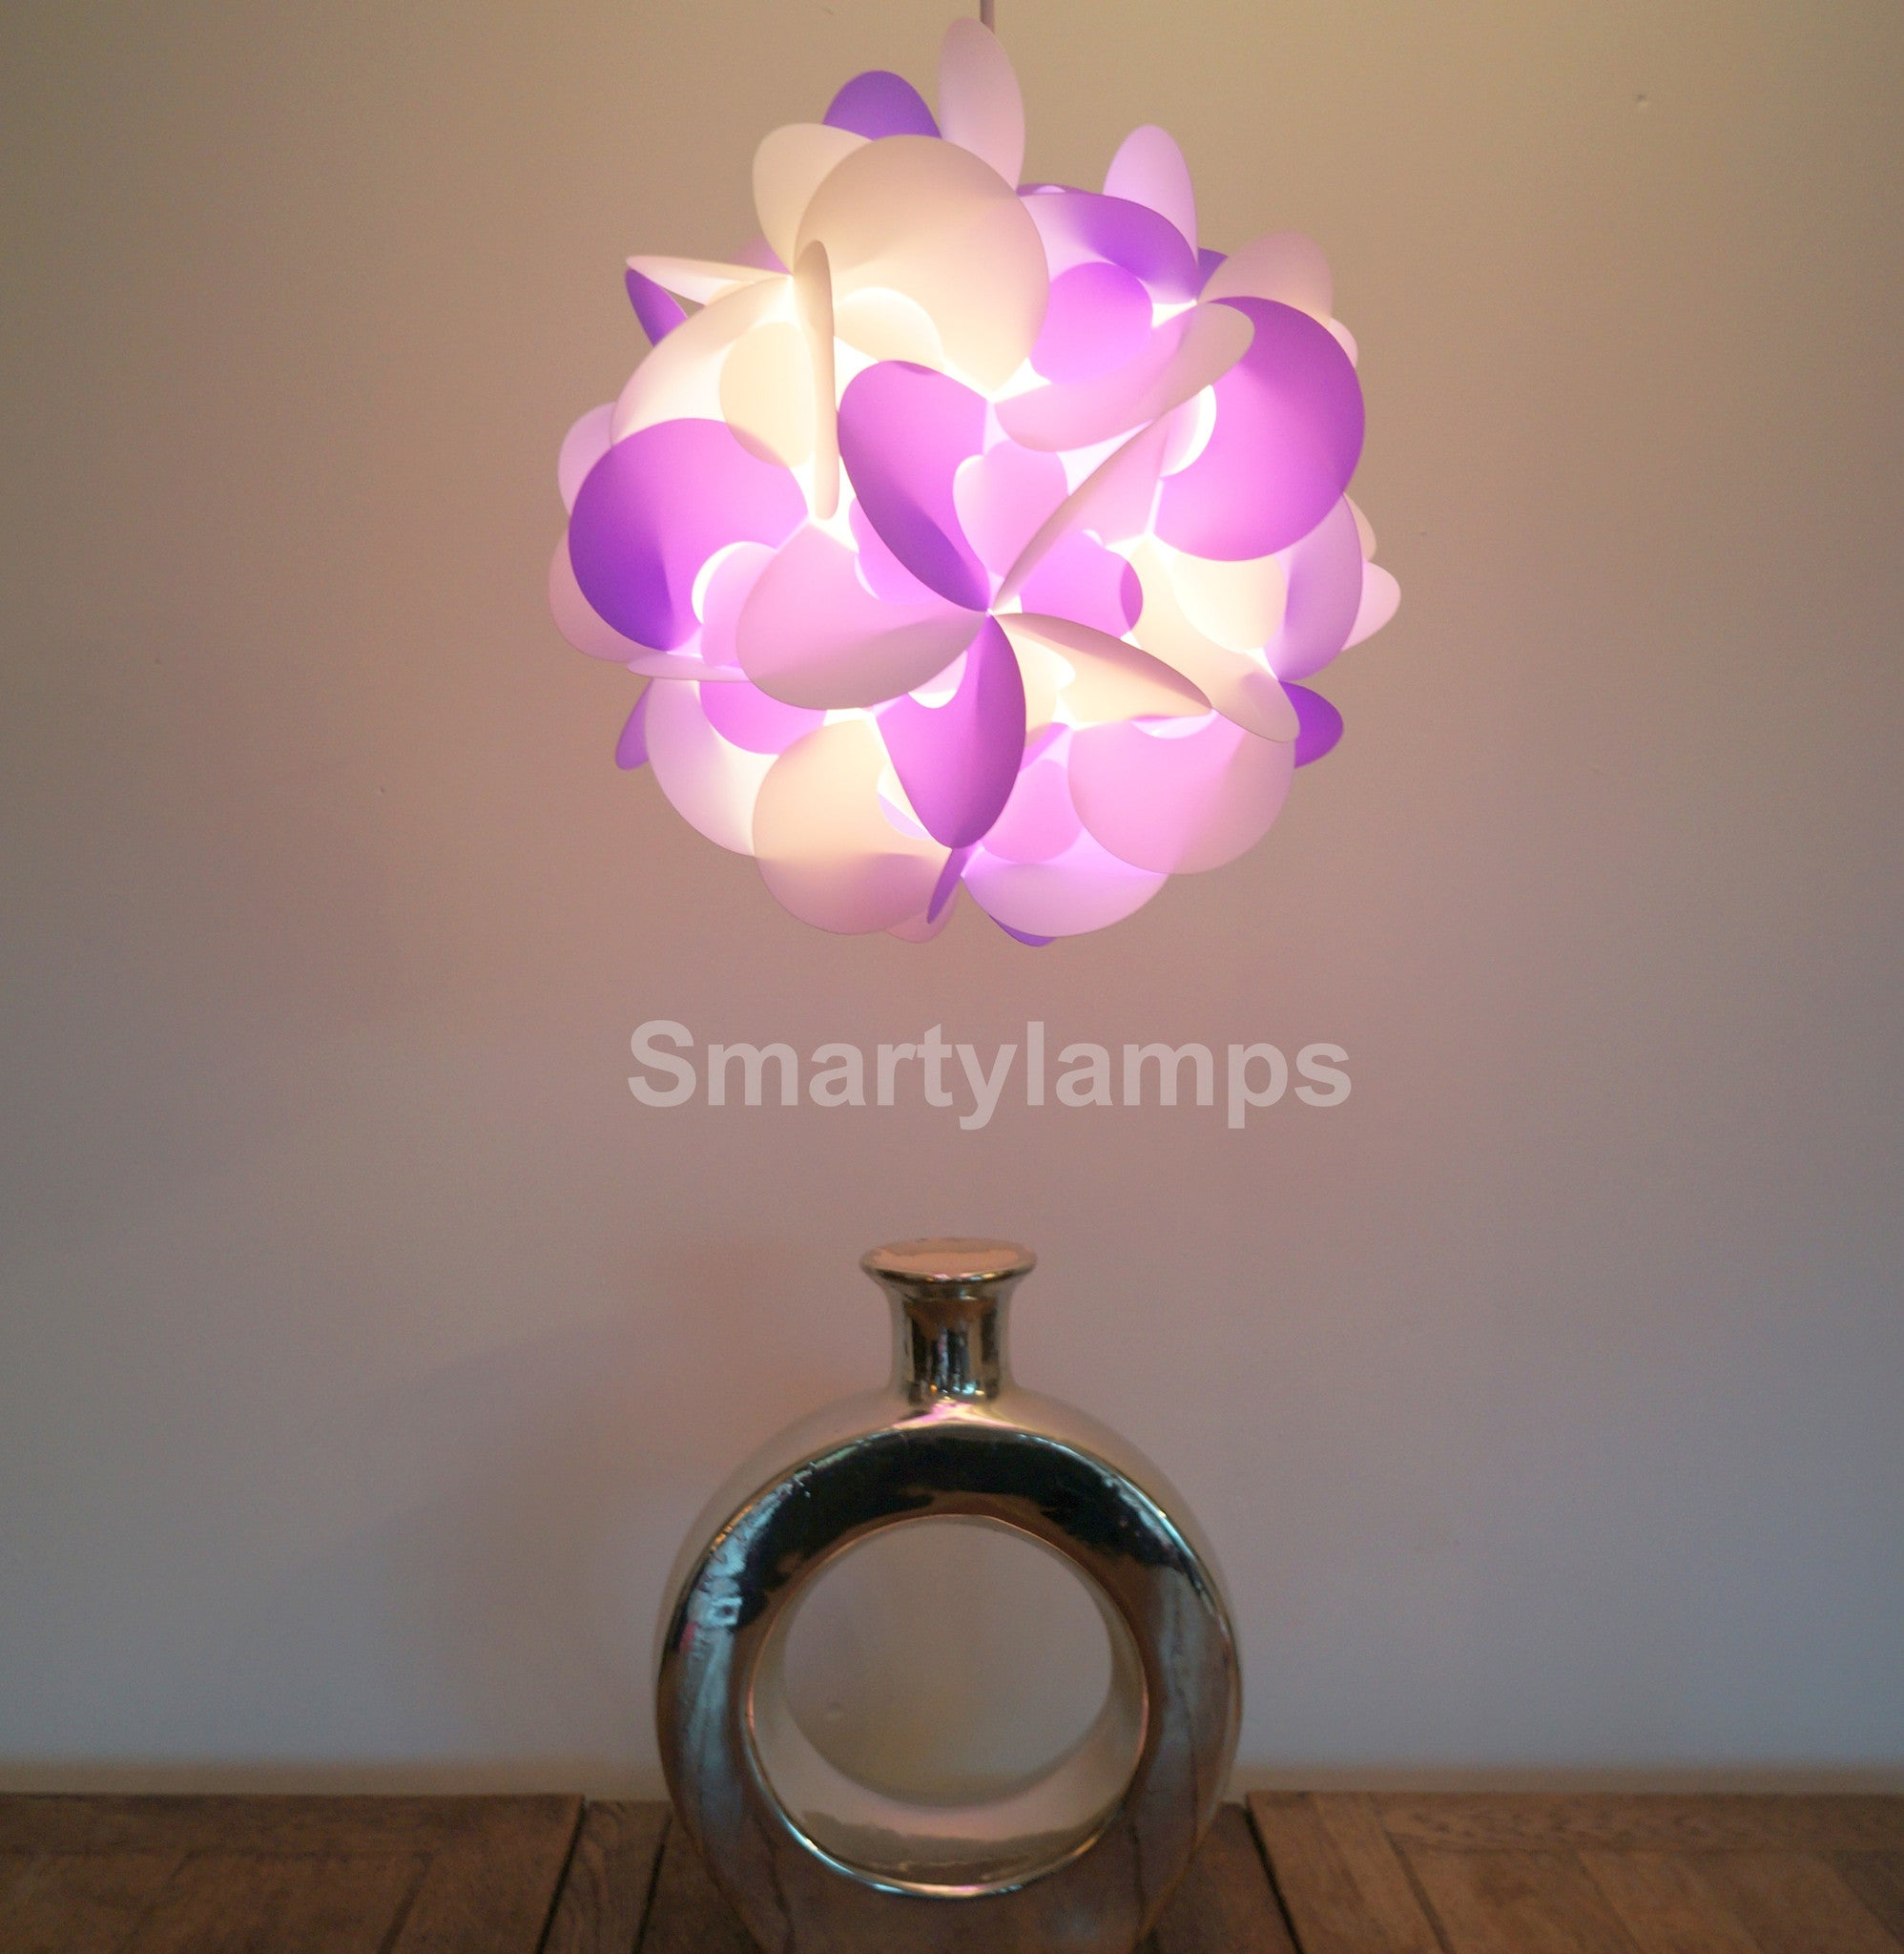 Curve Light Shade In Purple And White  Smart Deco Homeware Lighting and Art by Jacqueline hammond